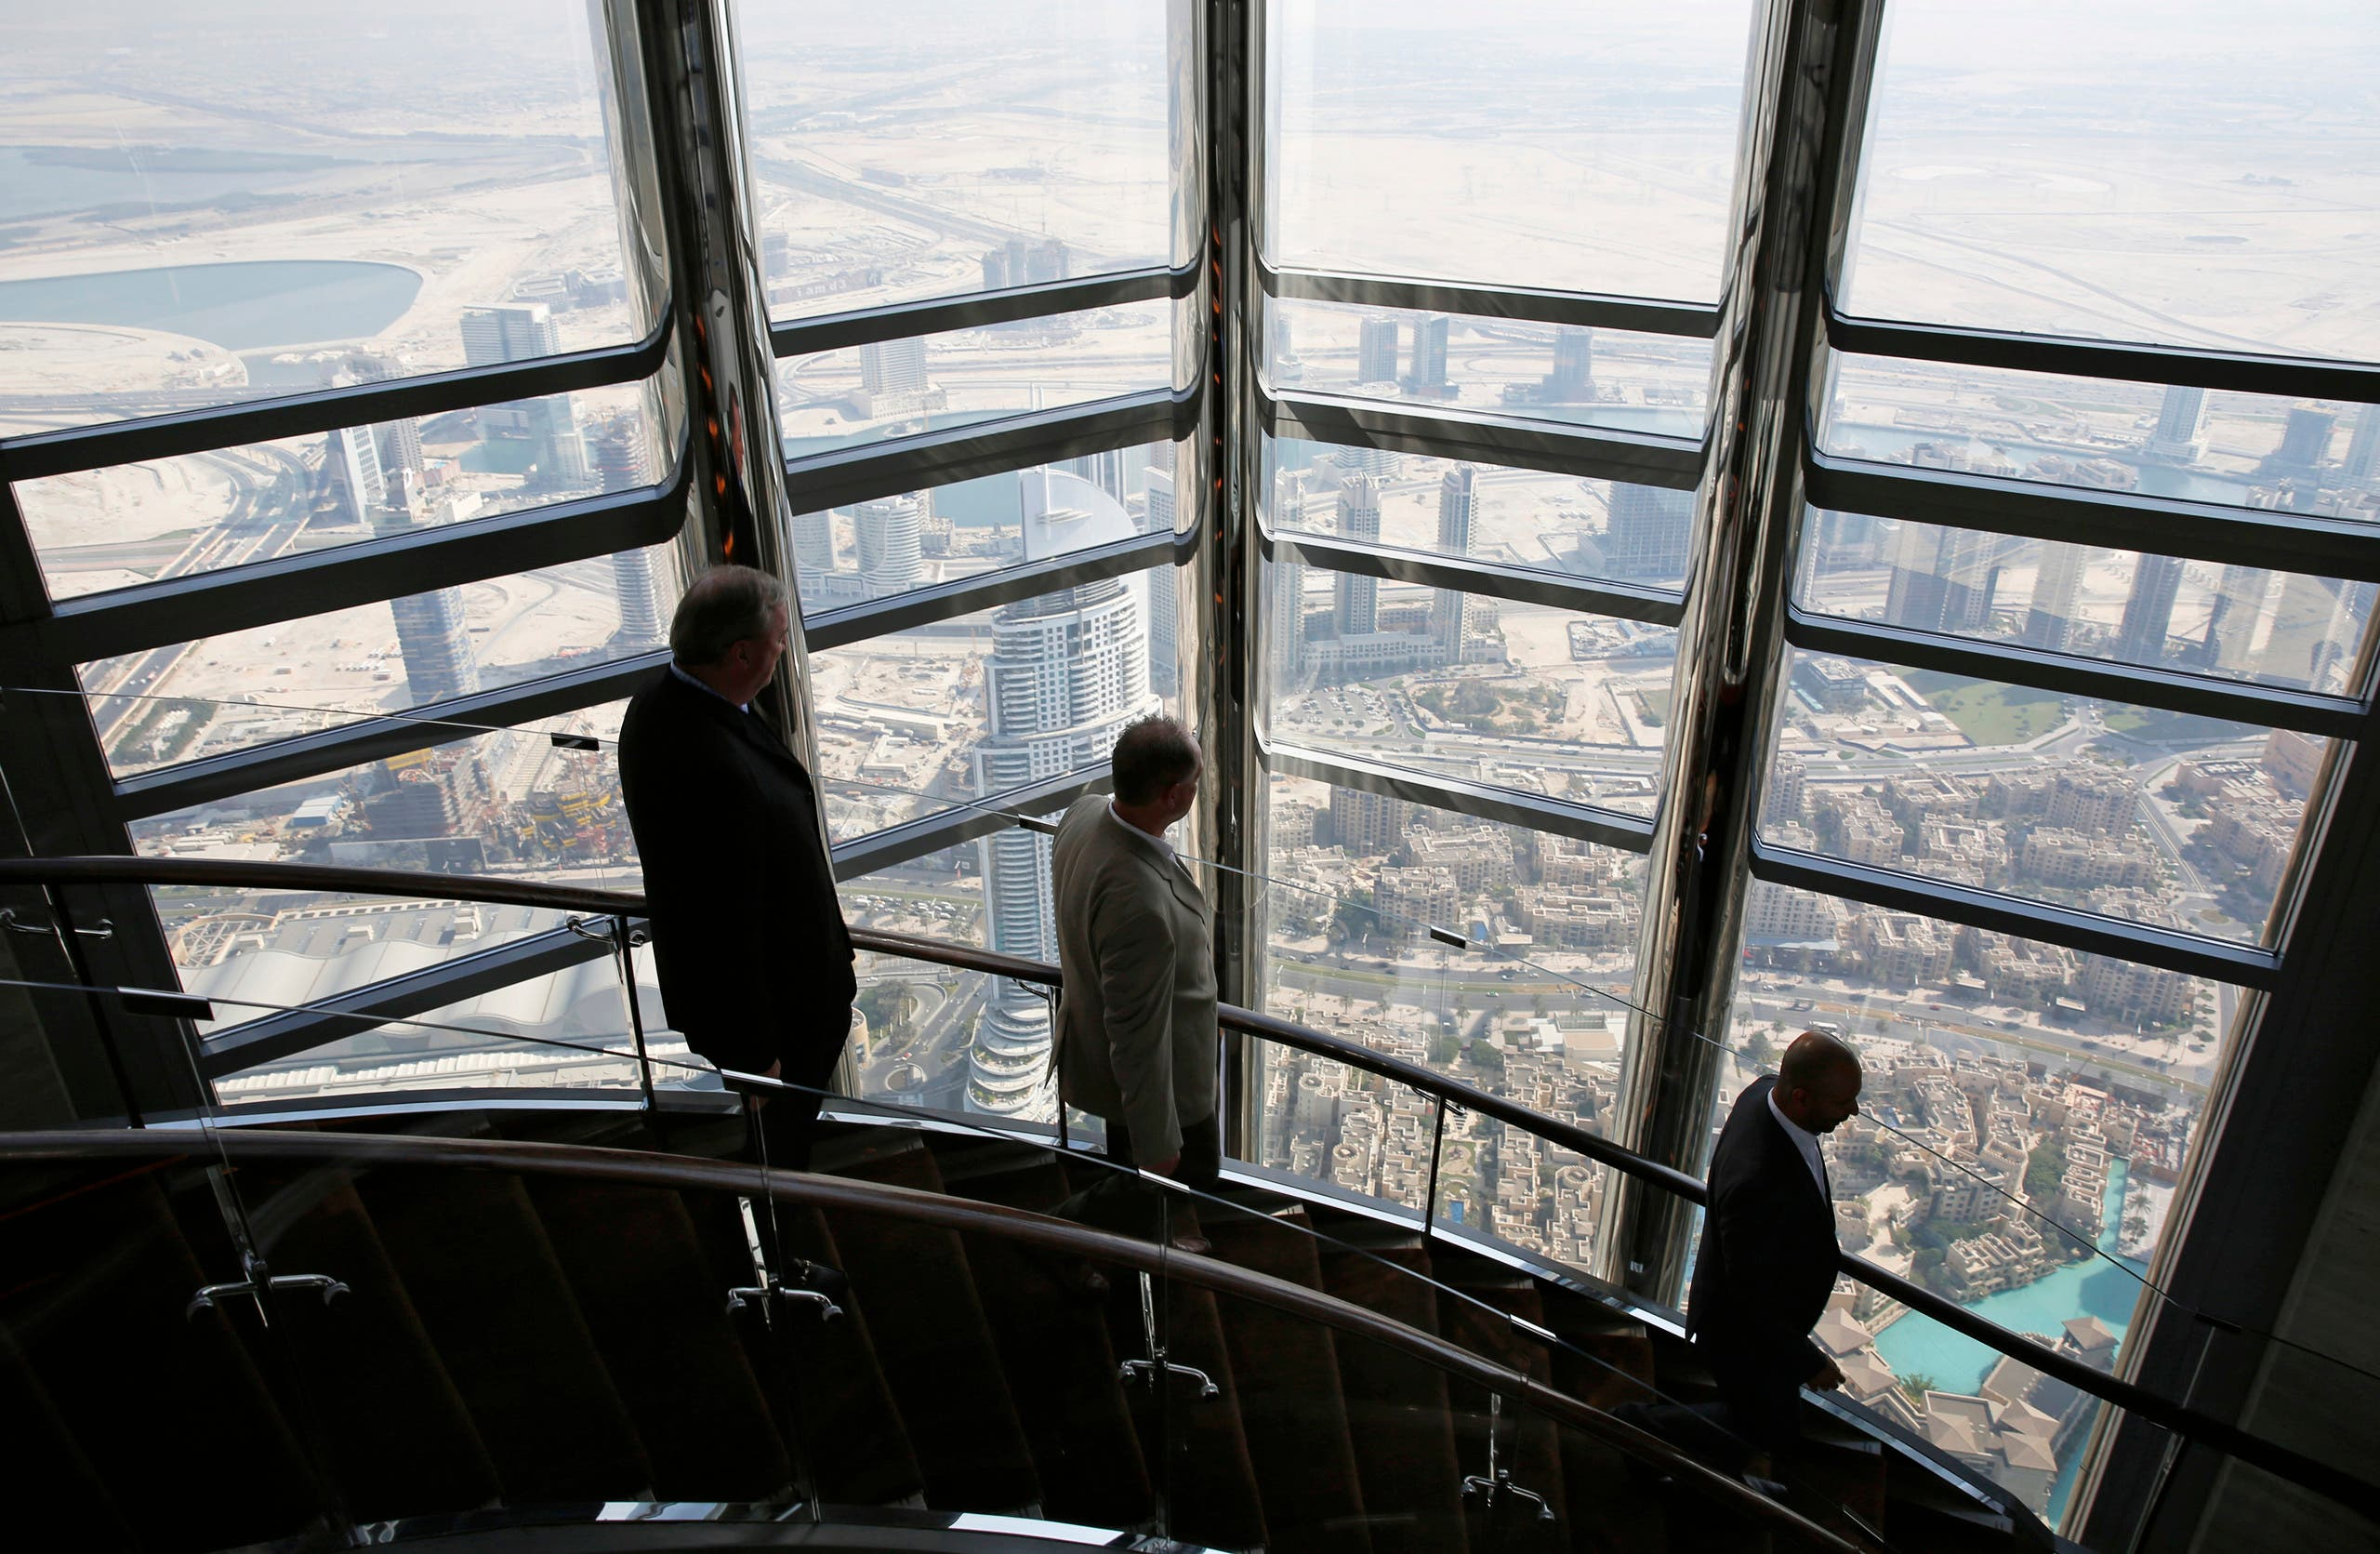 Businessmen walk down the stairs at the 123rd floor of the Burj Khalifa, the tallest building in the world, in Dubai. (File photo: Reuters)